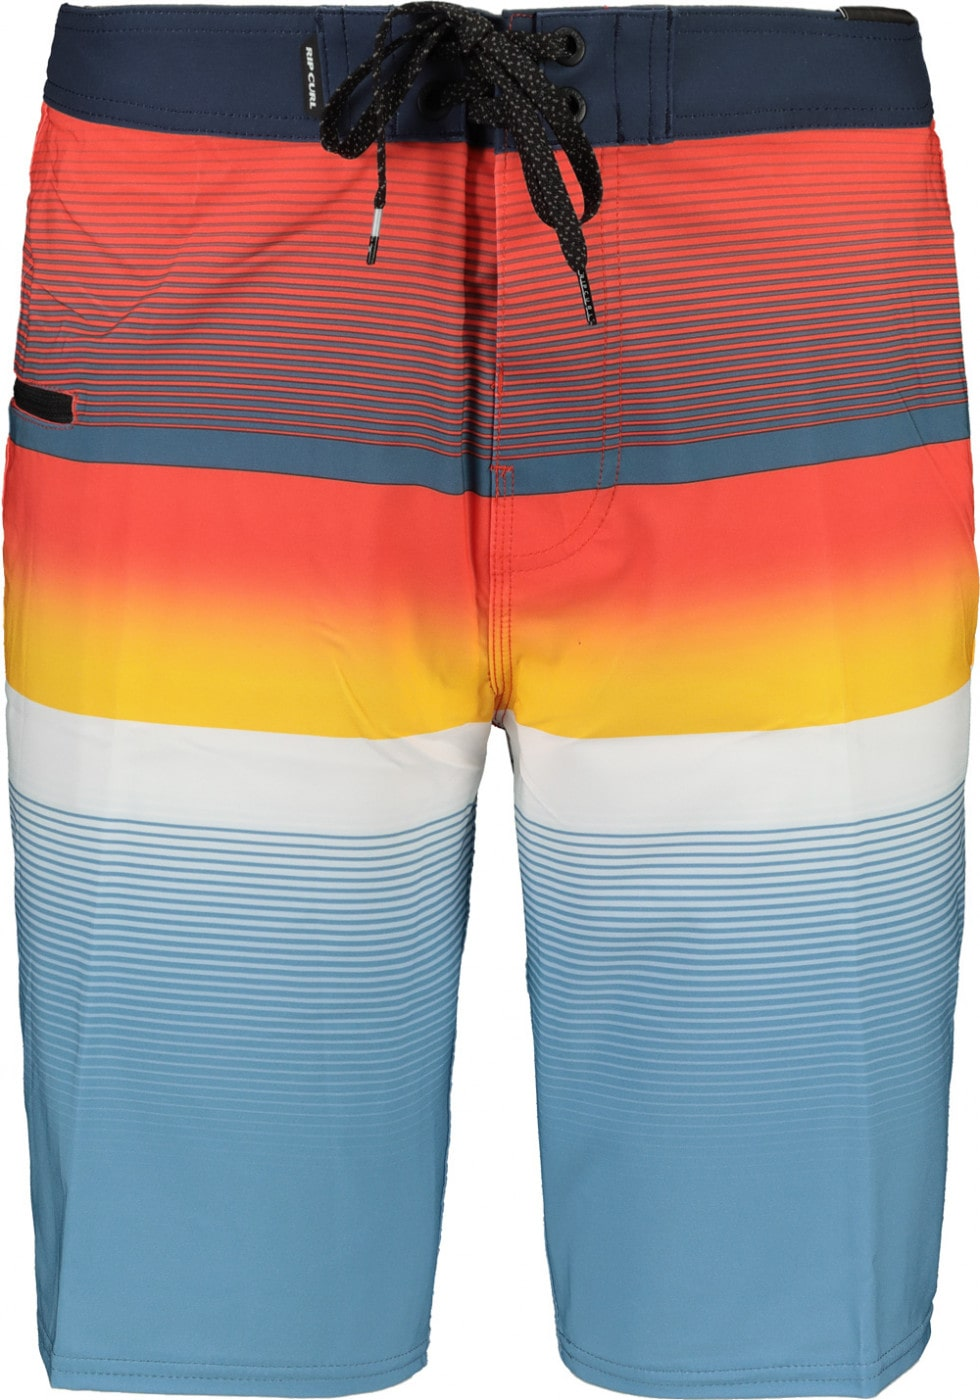 Men's boardshorts Rip Curl MIRAGE SUNSET ECLIPSE